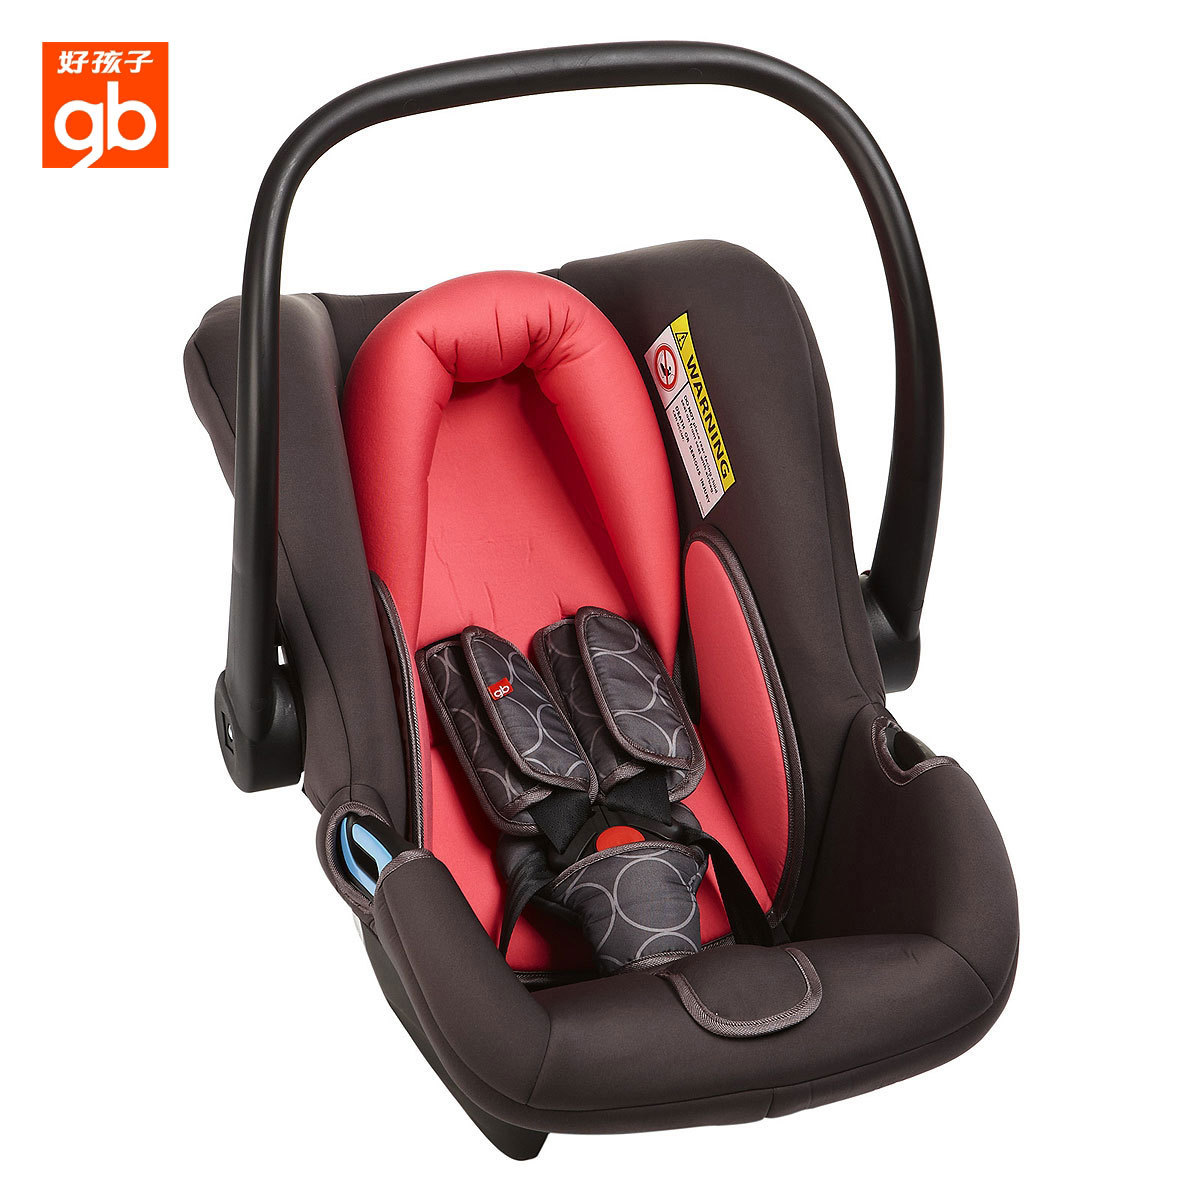 goodbaby european standard basket style baby boy child car safety seat cs28 j113 in child car. Black Bedroom Furniture Sets. Home Design Ideas